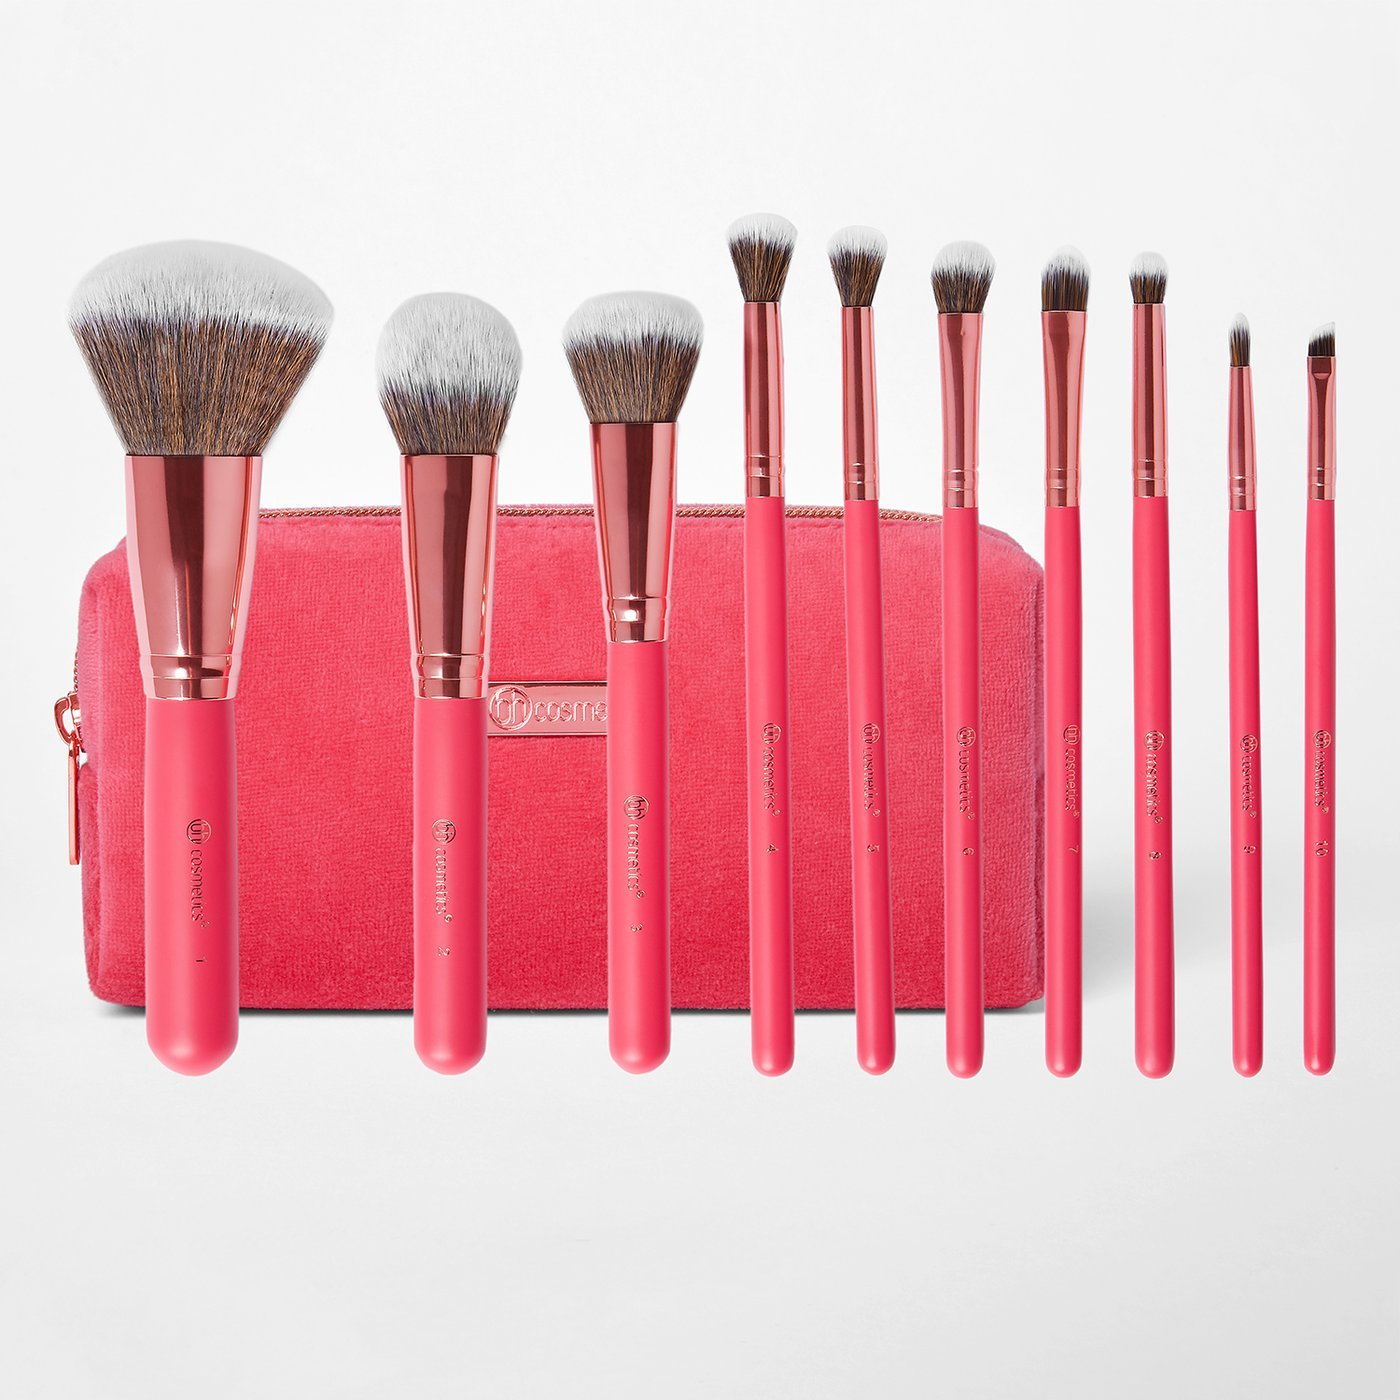 BH Cosmetics Bombshell beauty 10 piece brush set набор кистей